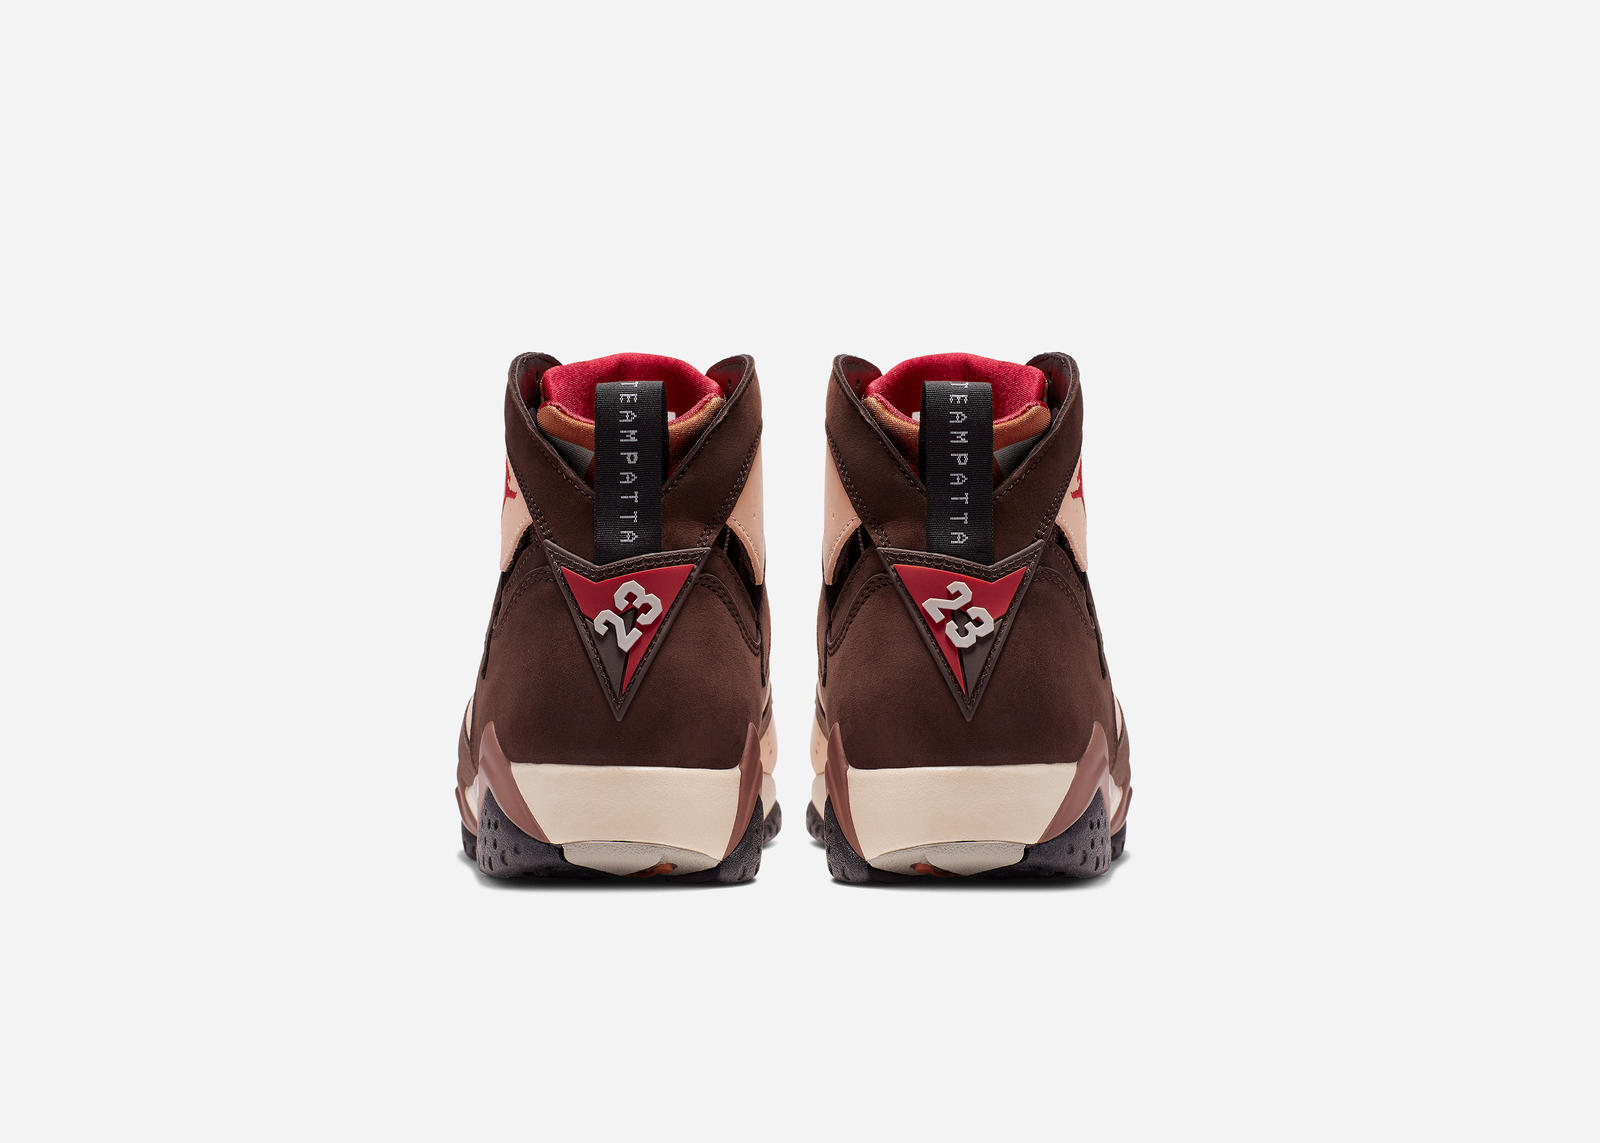 Air Jordan 7 Patta Official Images and Release Date 8